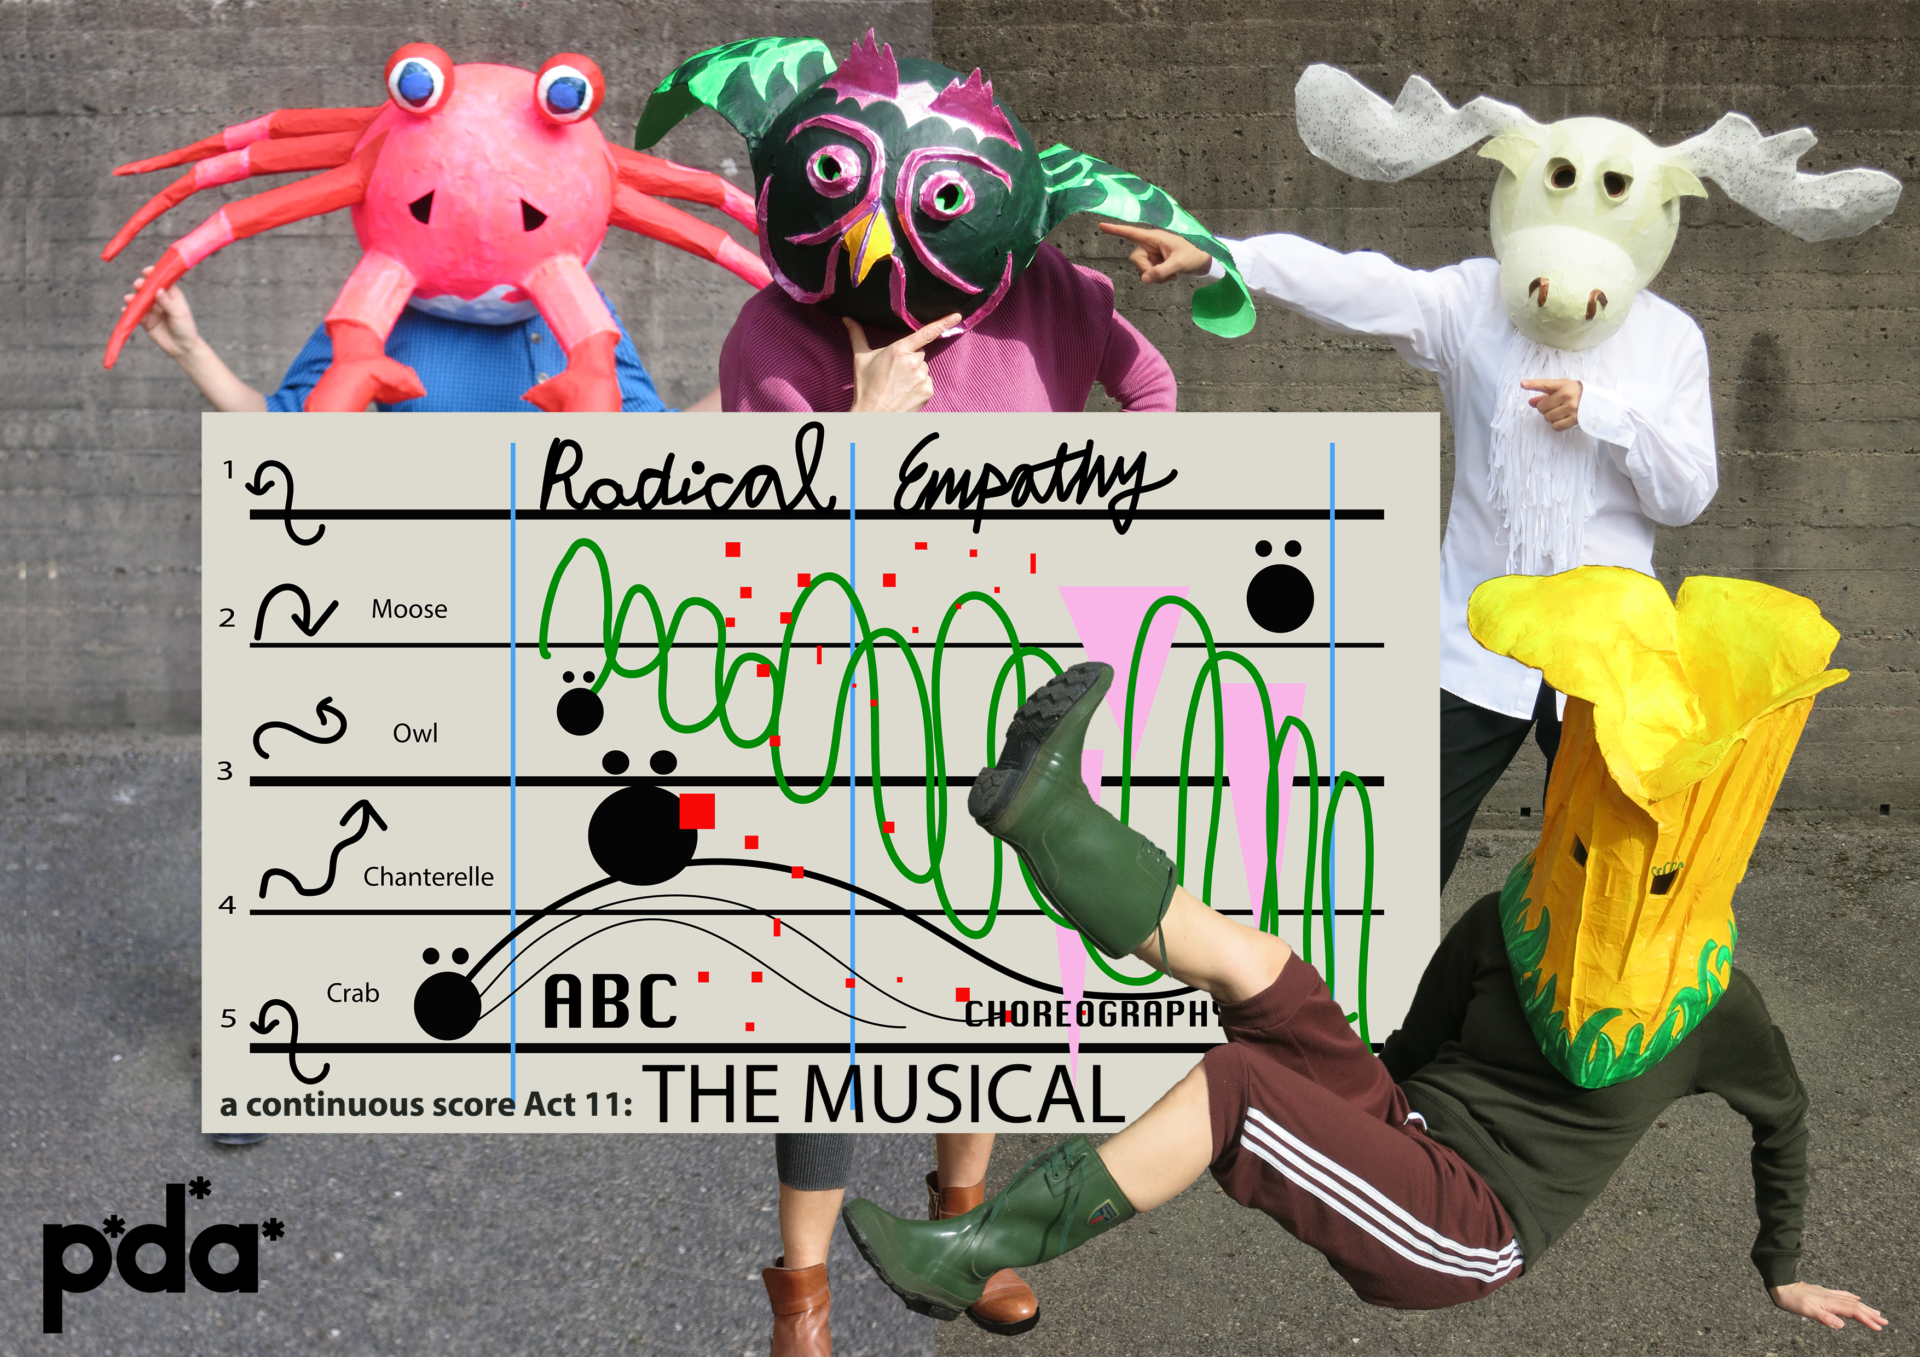 Radical Empathy, A Continuous Score, Act 11: The Musical, P*D*A*